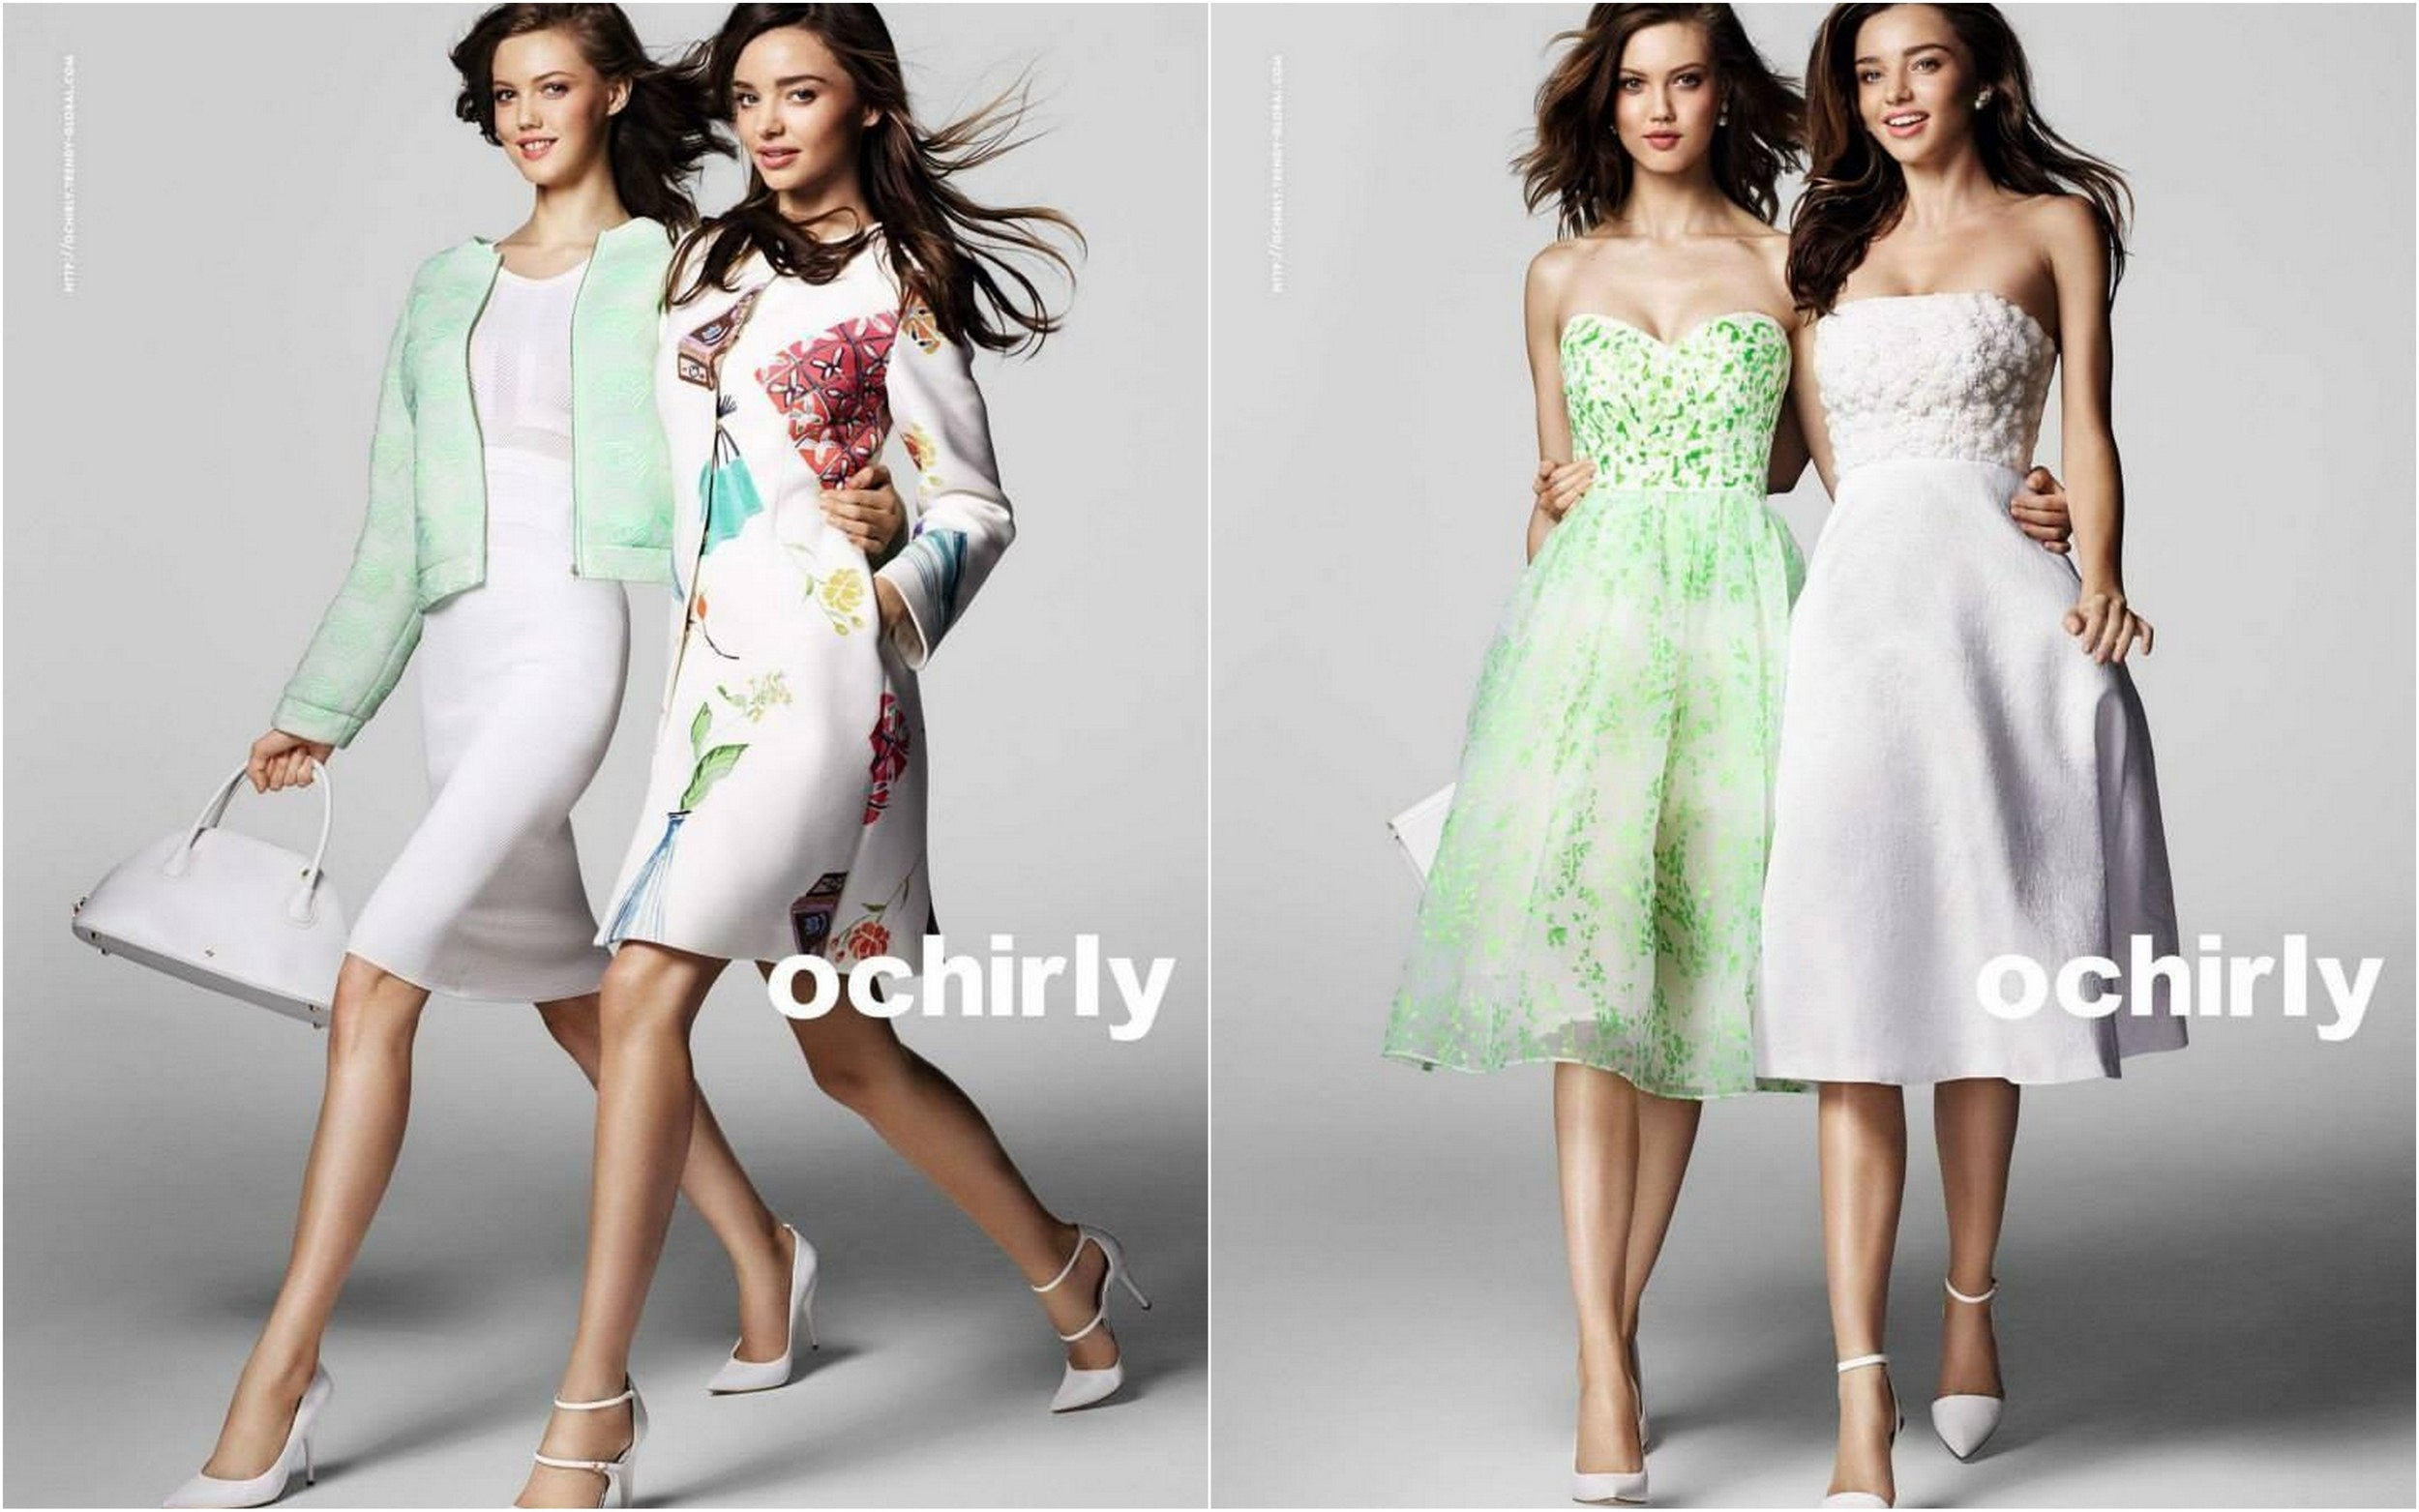 Lindsey Wixson and Miranda Kerr for Ochirly S/S 2015 shot by Mario Testino |  Models.com